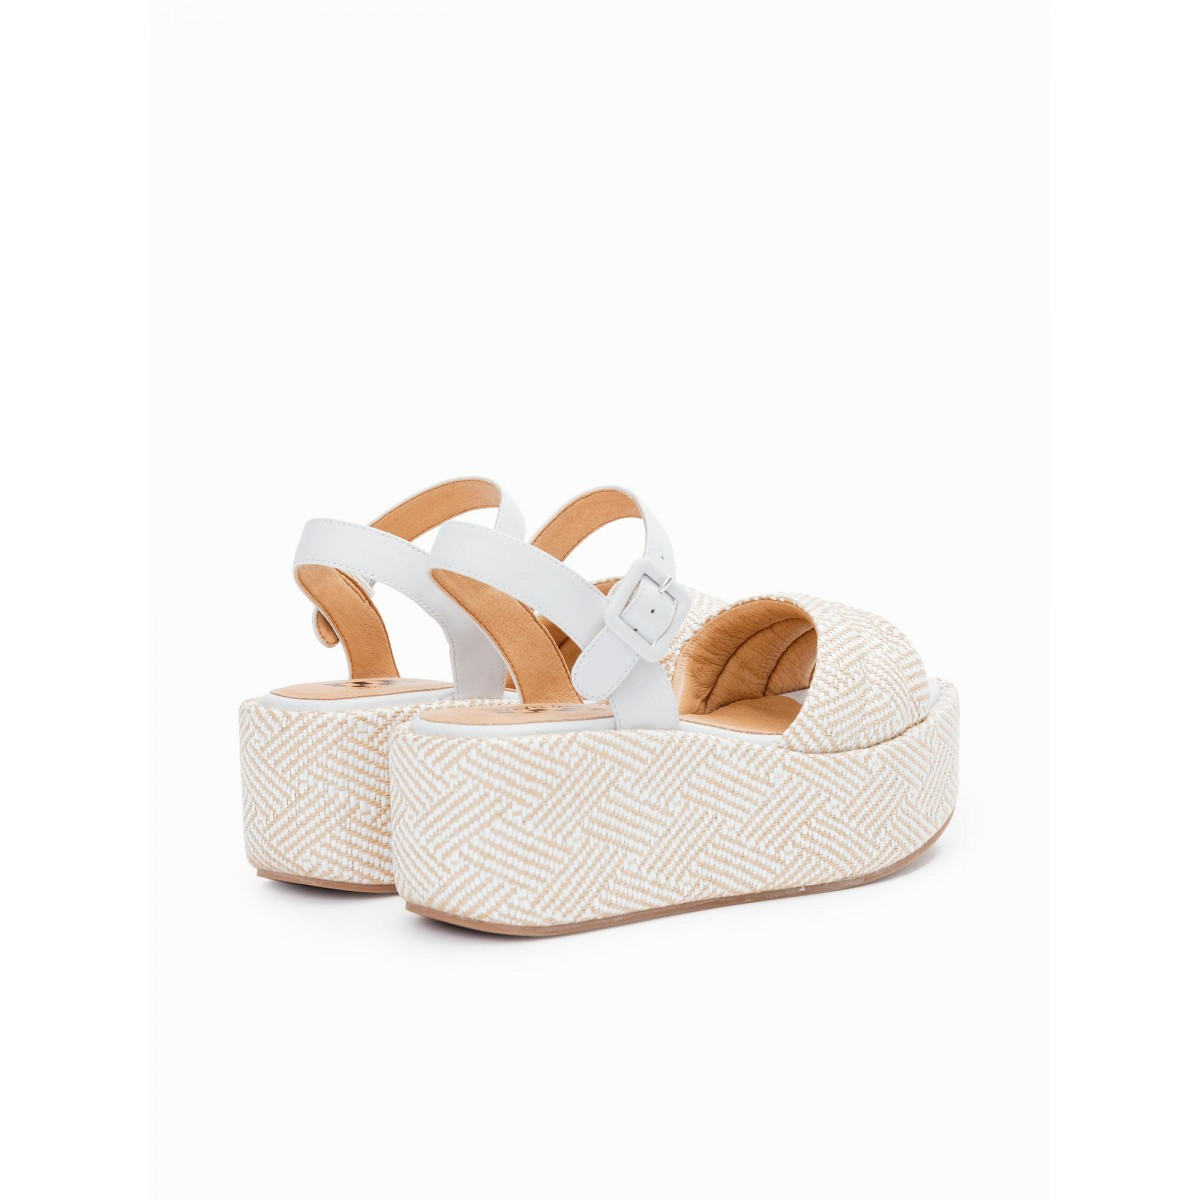 No Name BETTY SANDAL - RAPHIA - WHITE-NATURAL